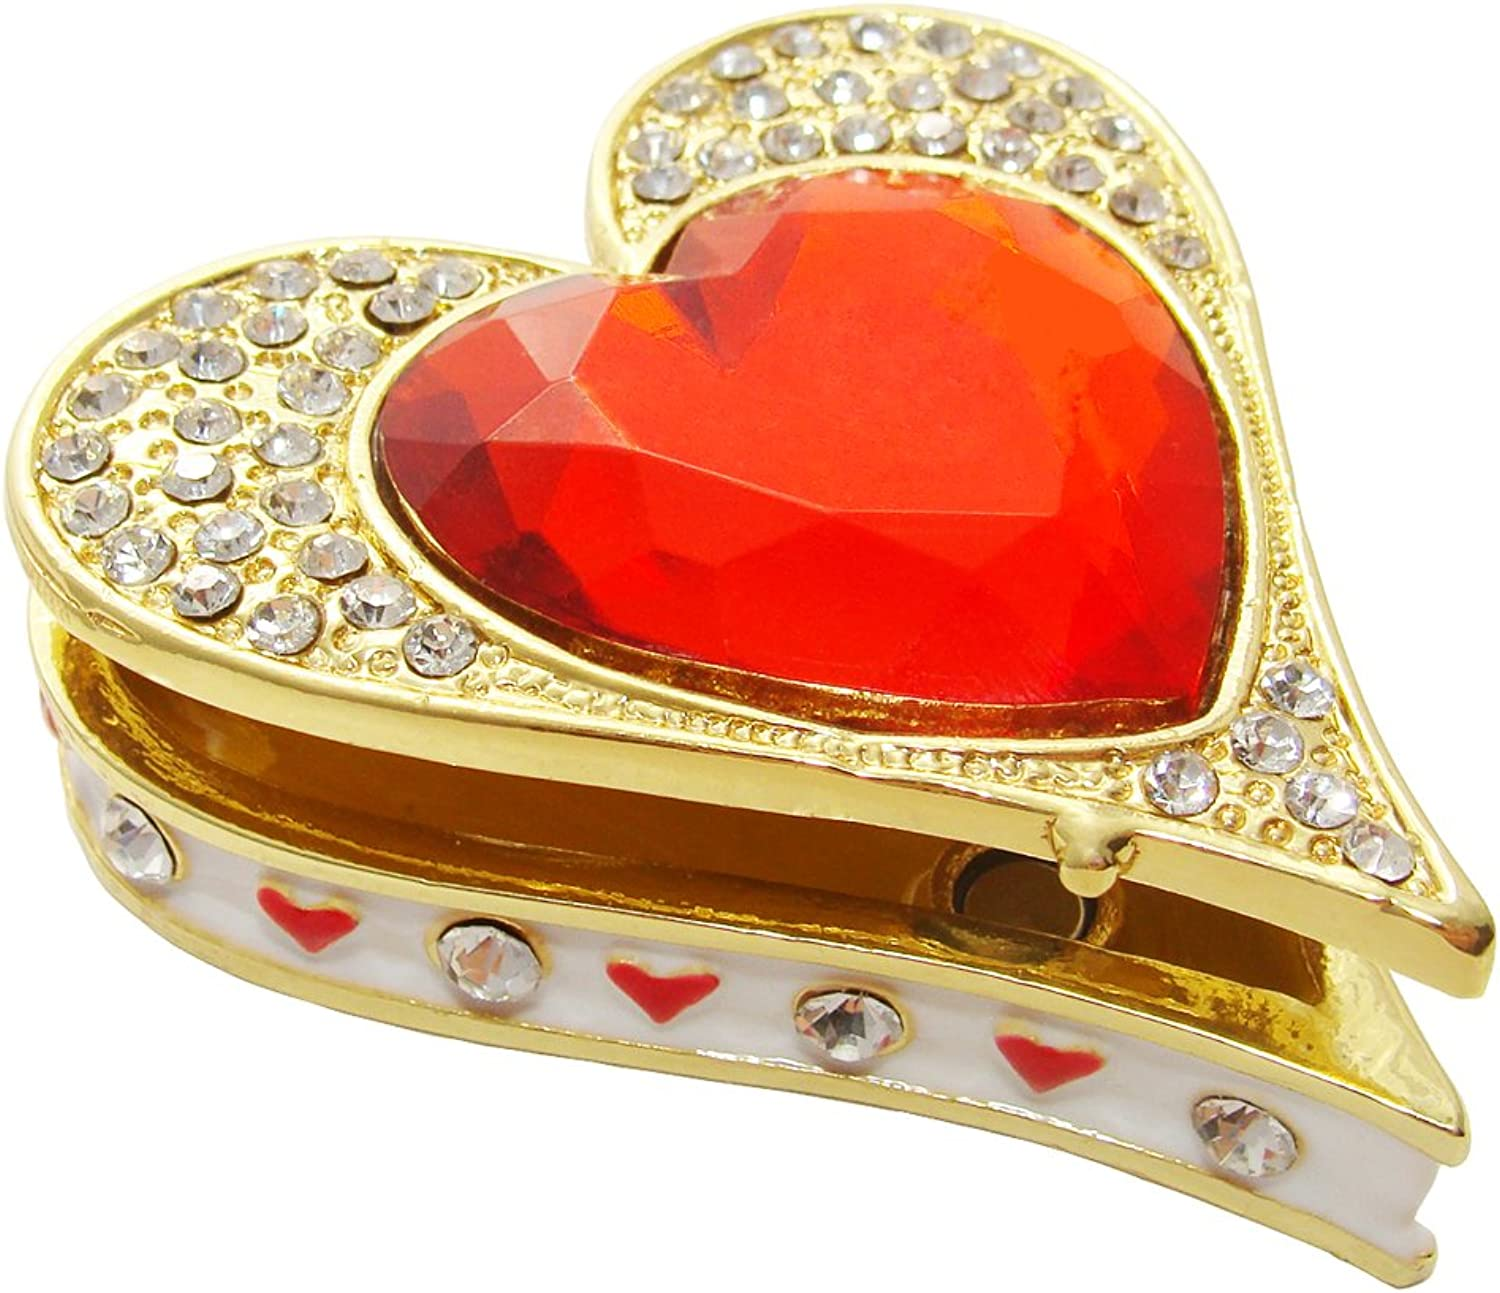 Objet D'Art Release  140 Queen of Hearts Casino Playing Card Suit Handmade Jeweled Enameled Metal Trinket Box